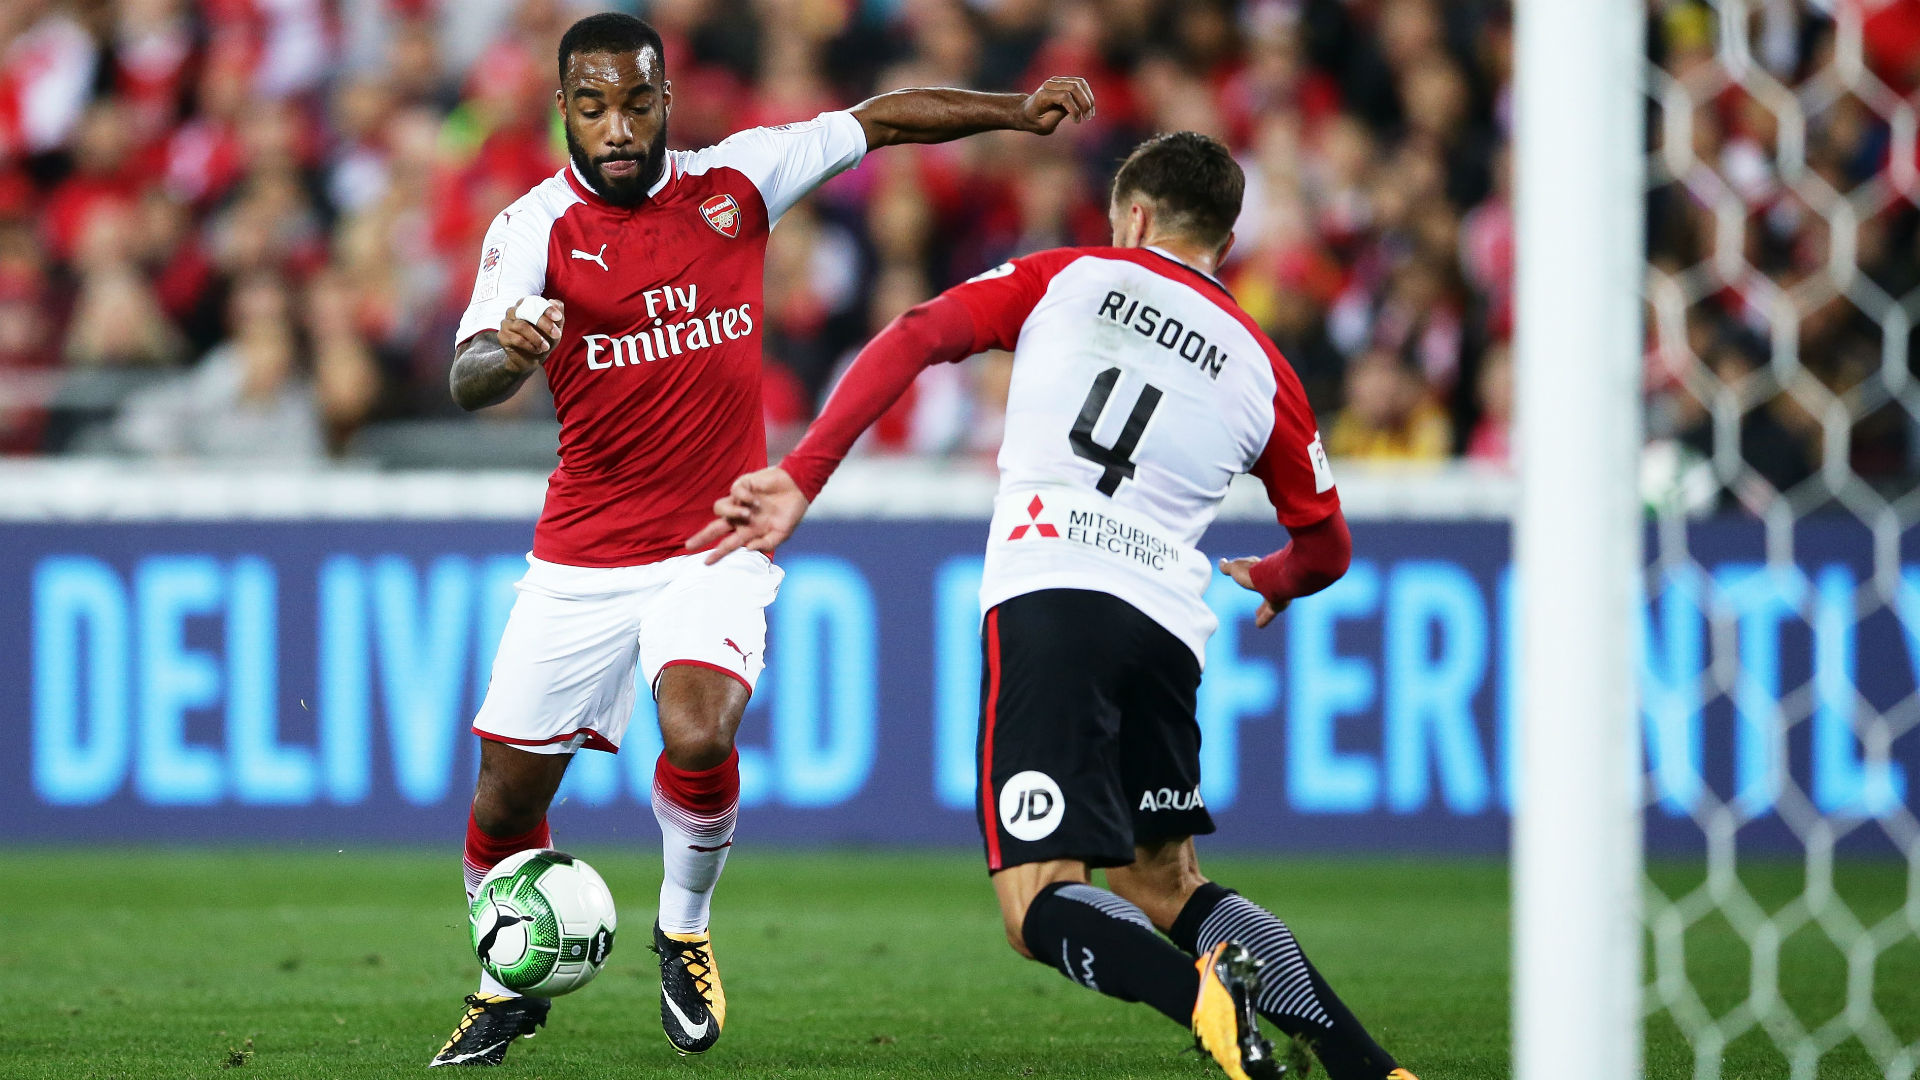 Arsenal consider move for Celtic forward Moussa Dembele?